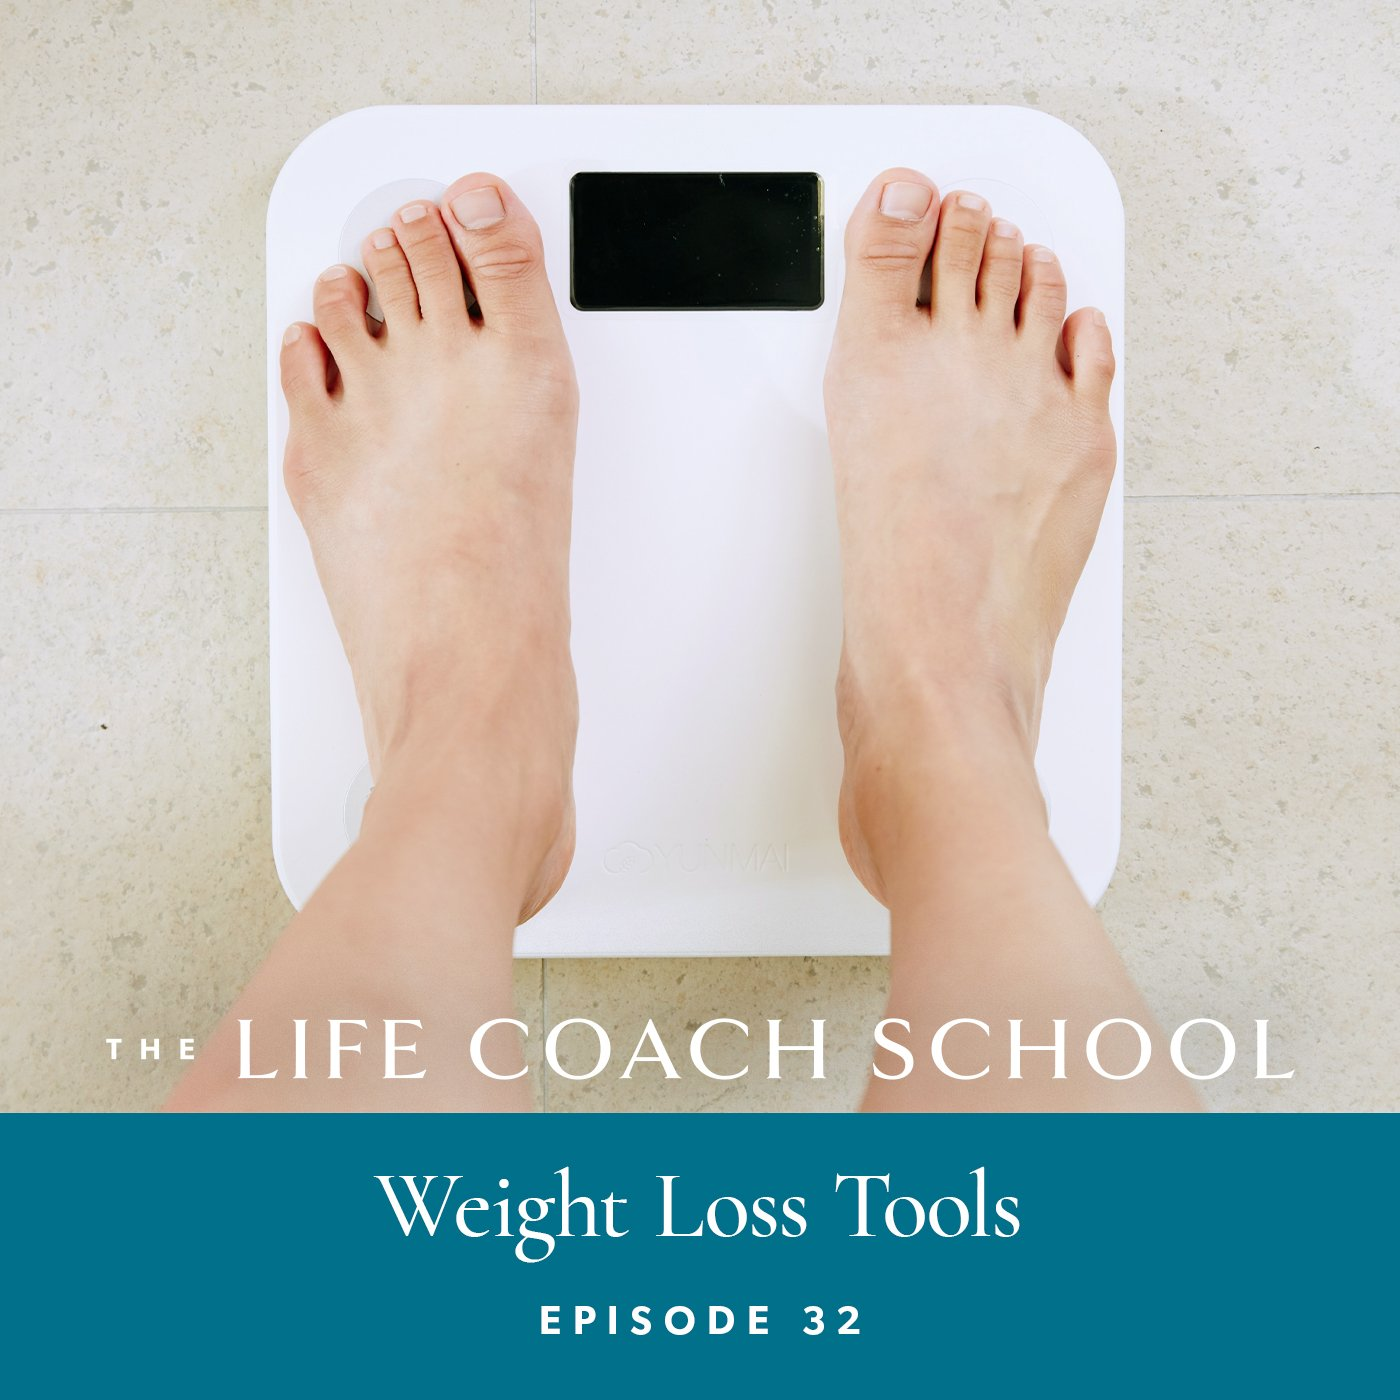 The Life Coach School Podcast with Brooke Castillo | Episode 32 | Weight Loss Tools